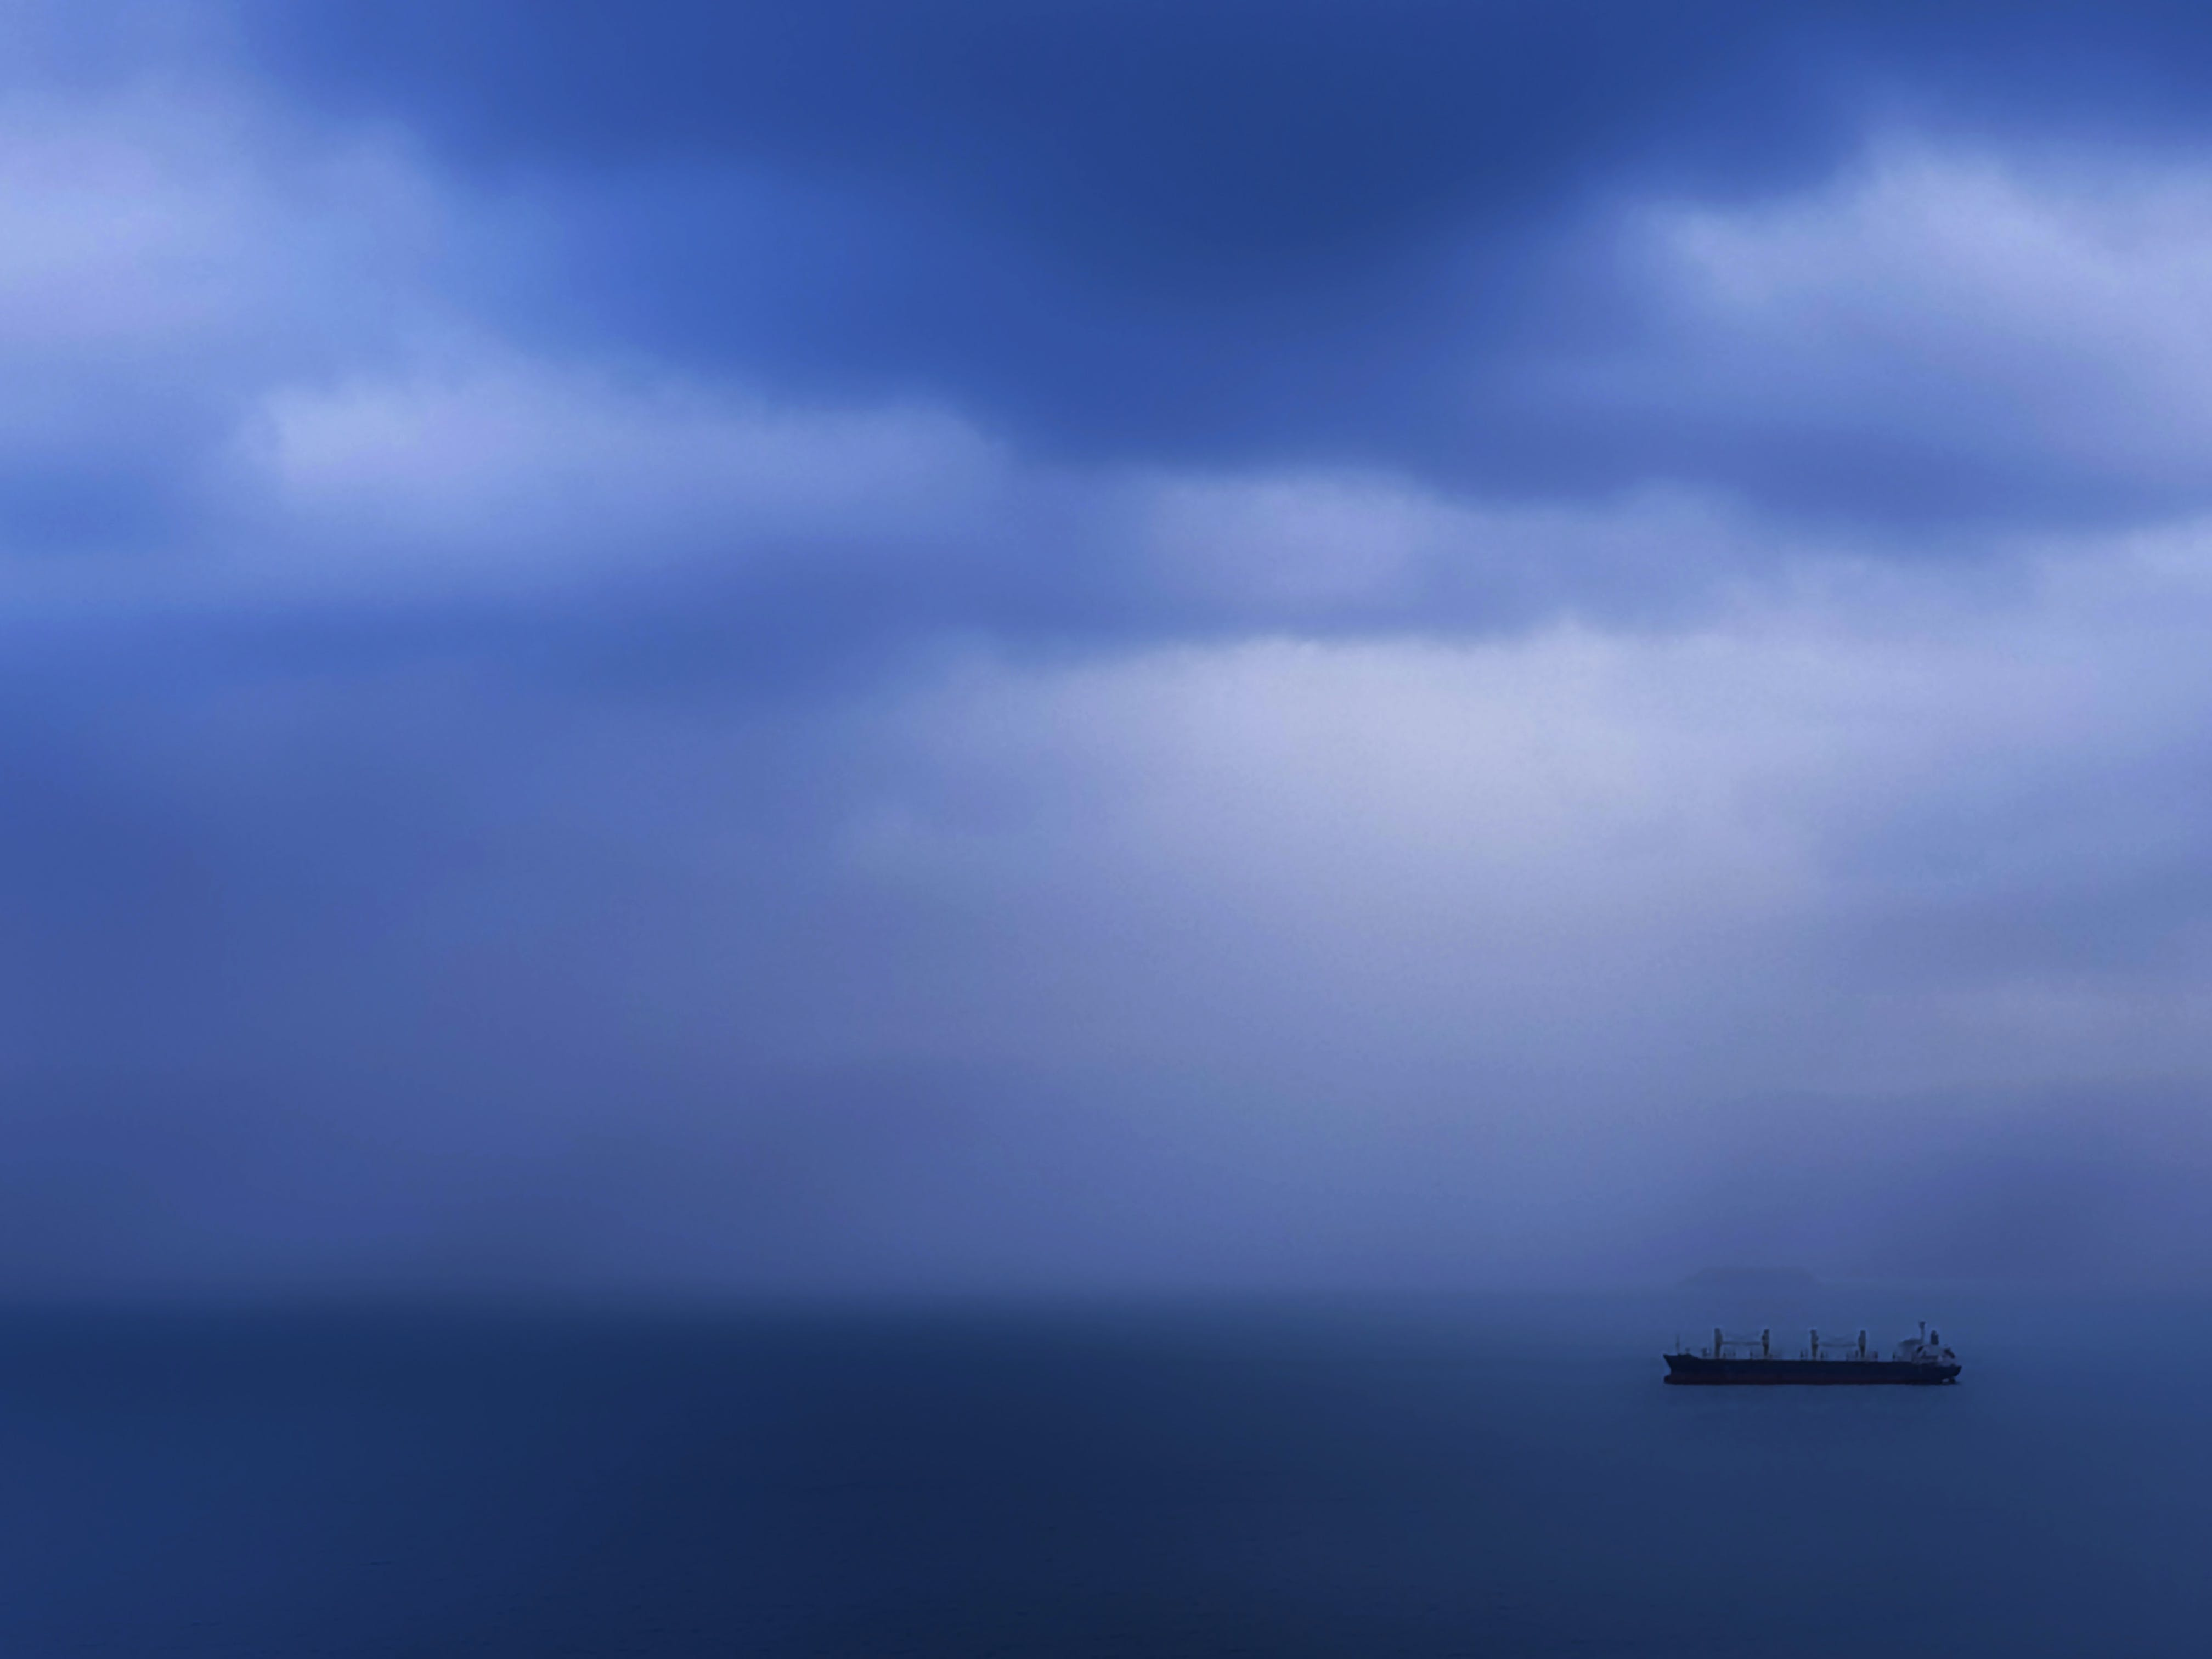 Free stock photo of blue, boat, clouds, container ship